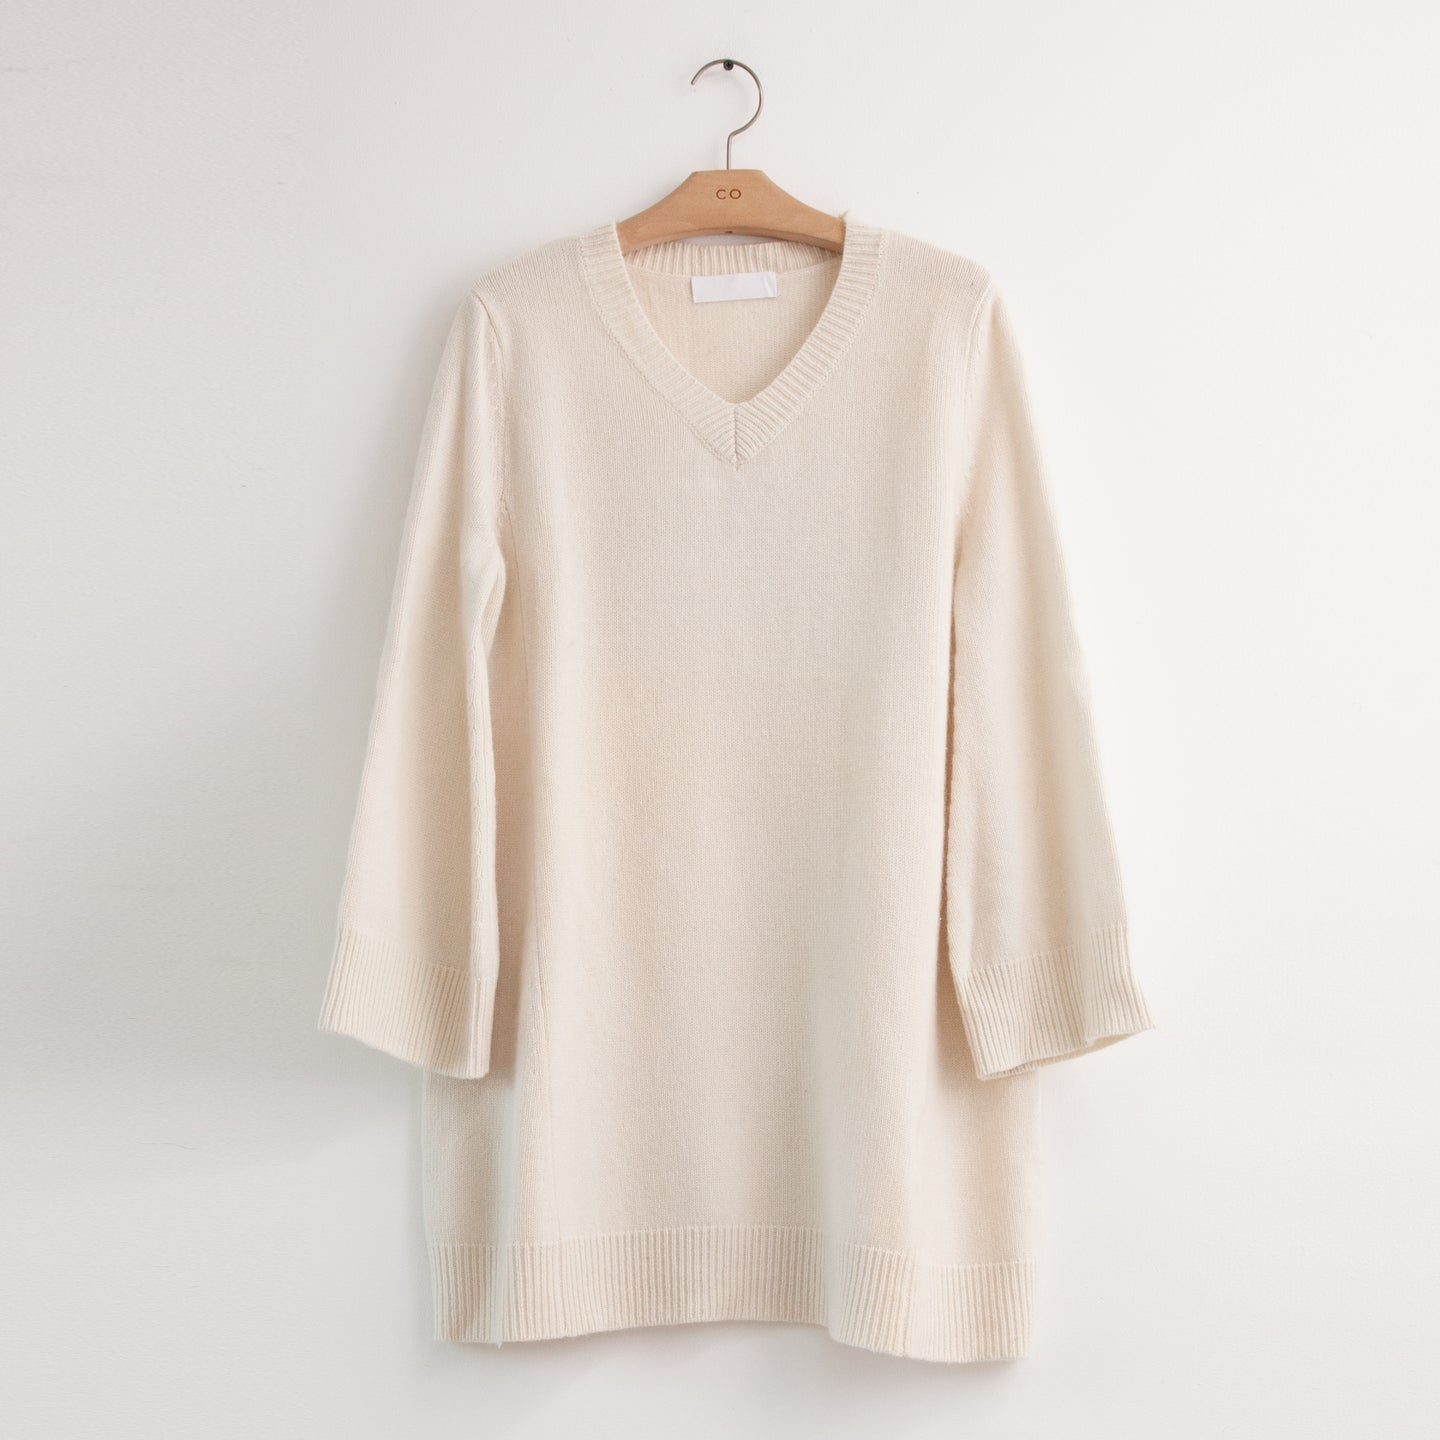 Oversized v neck tunic sweater in wool cashmere - CO